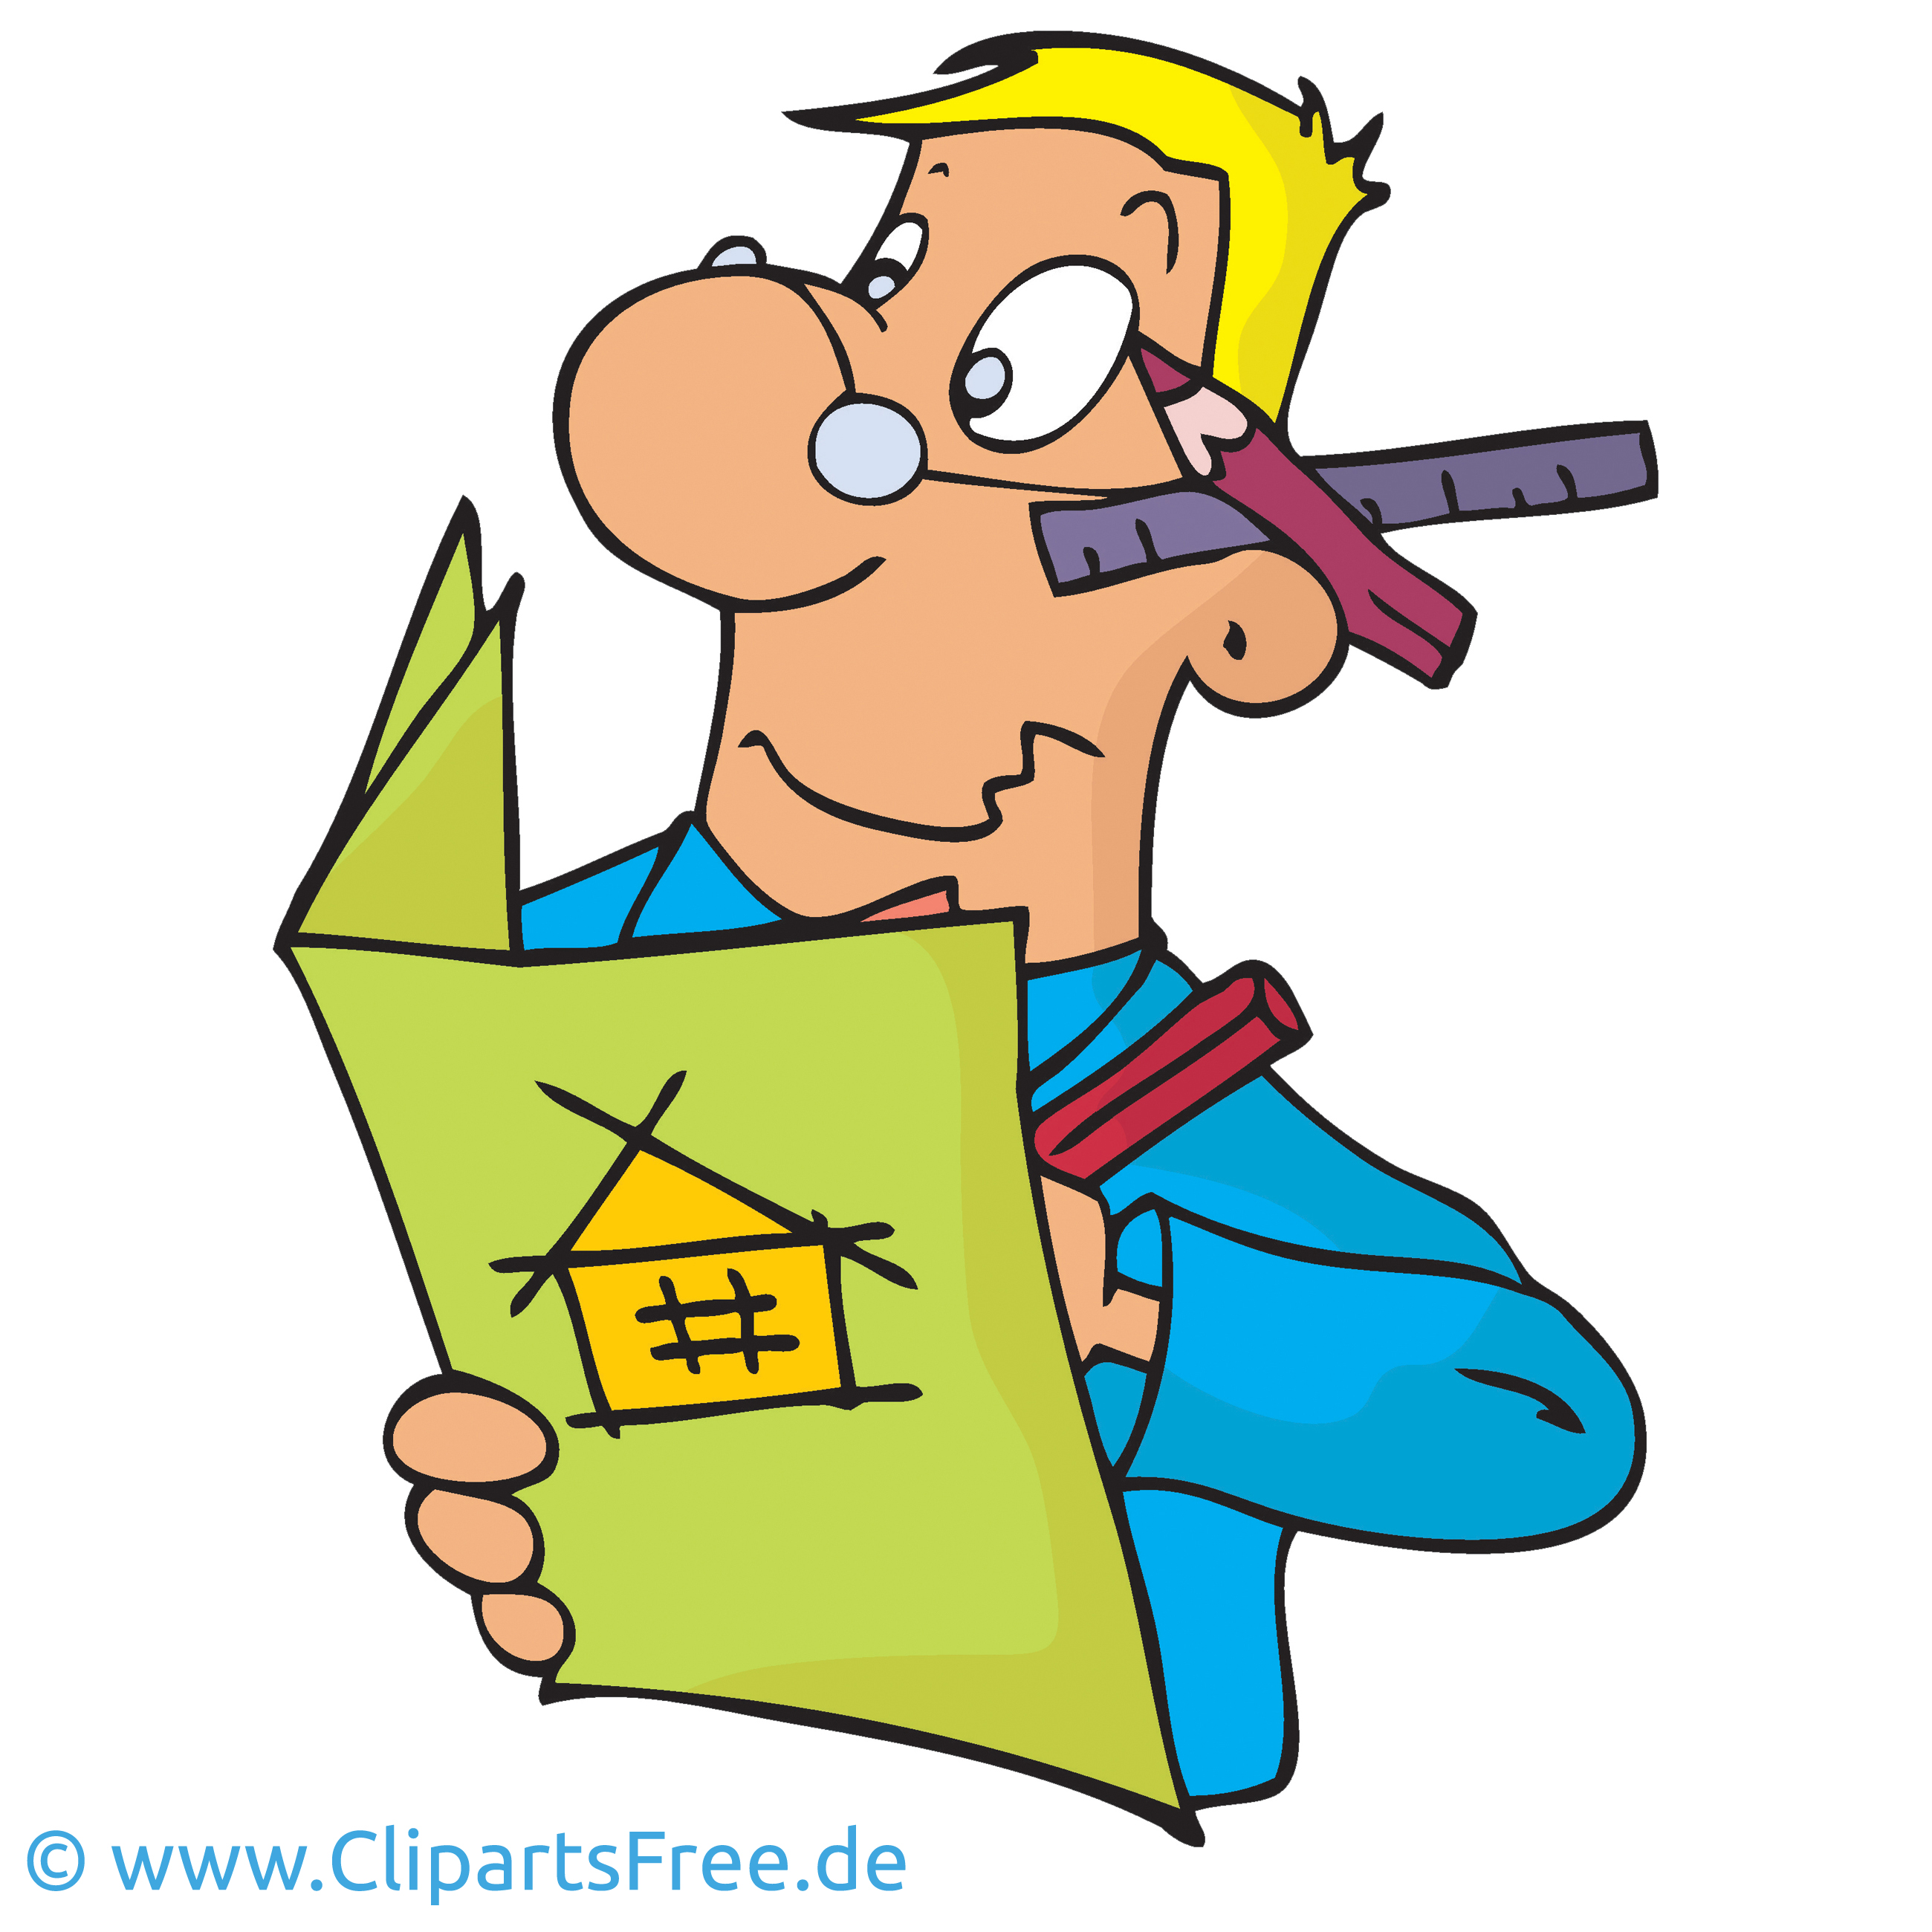 Umzug Cartoon Clipart Free Download Best Umzug Cartoon Clipart On